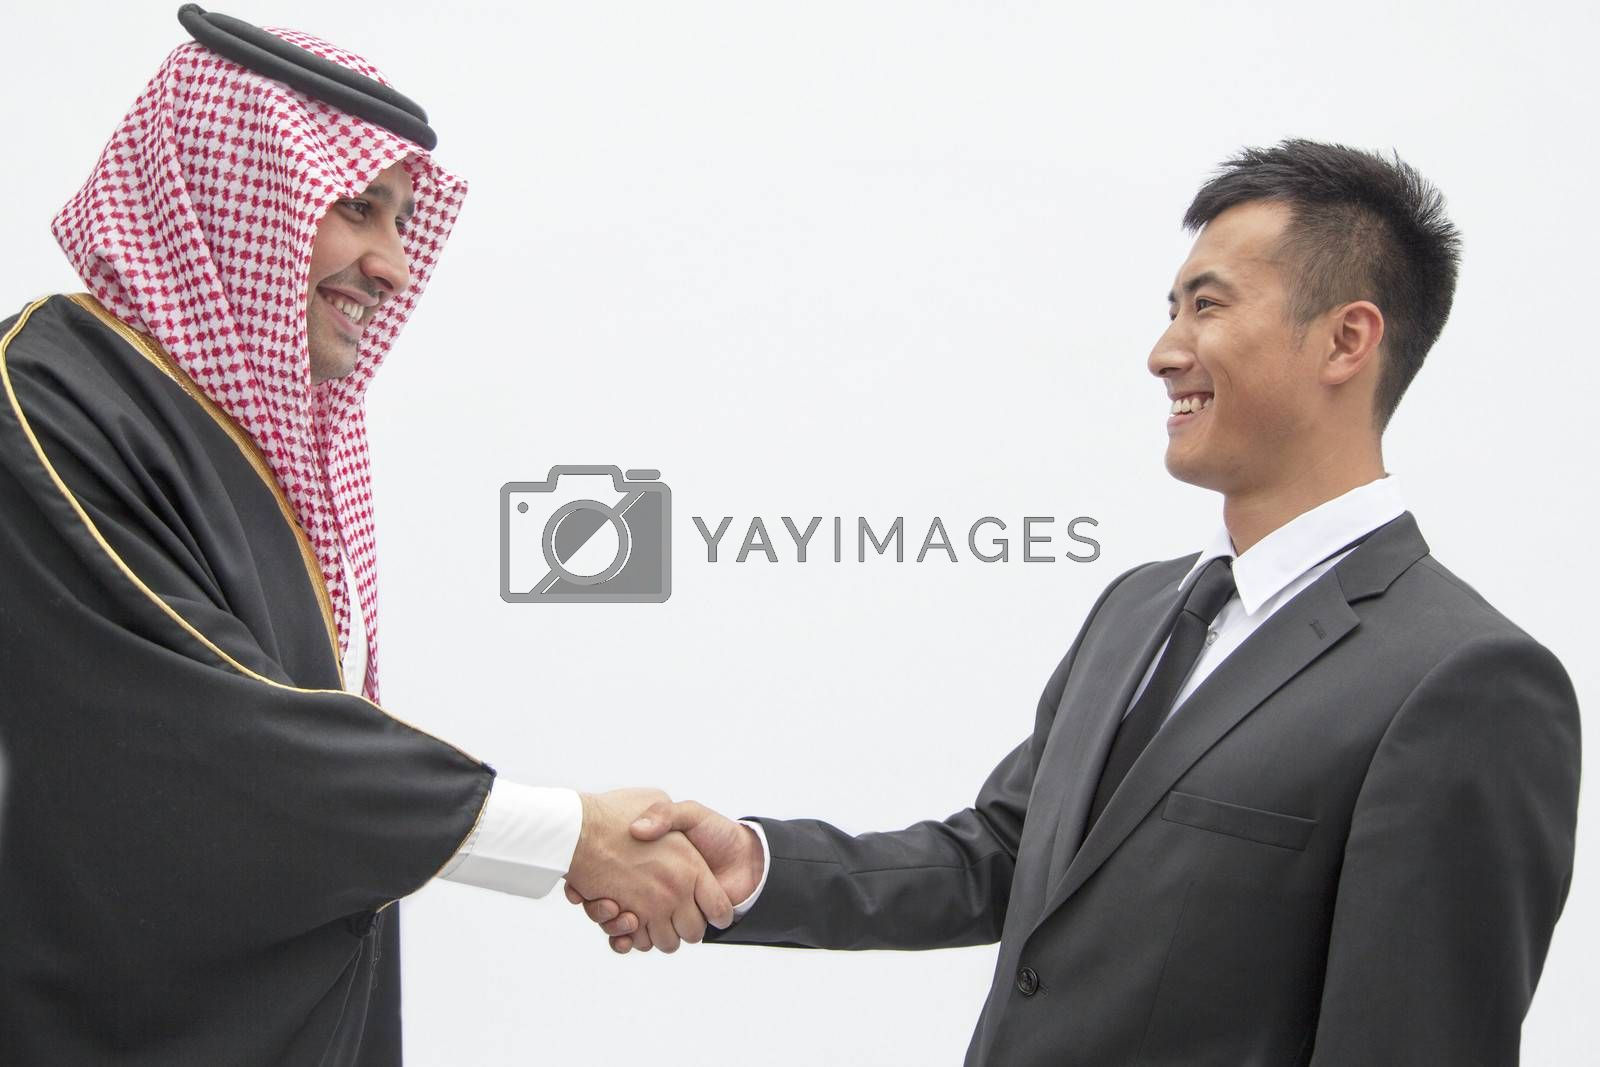 Smiling businessman and young man in traditional Arab clothing shaking hands, studio shot by XiXinXing